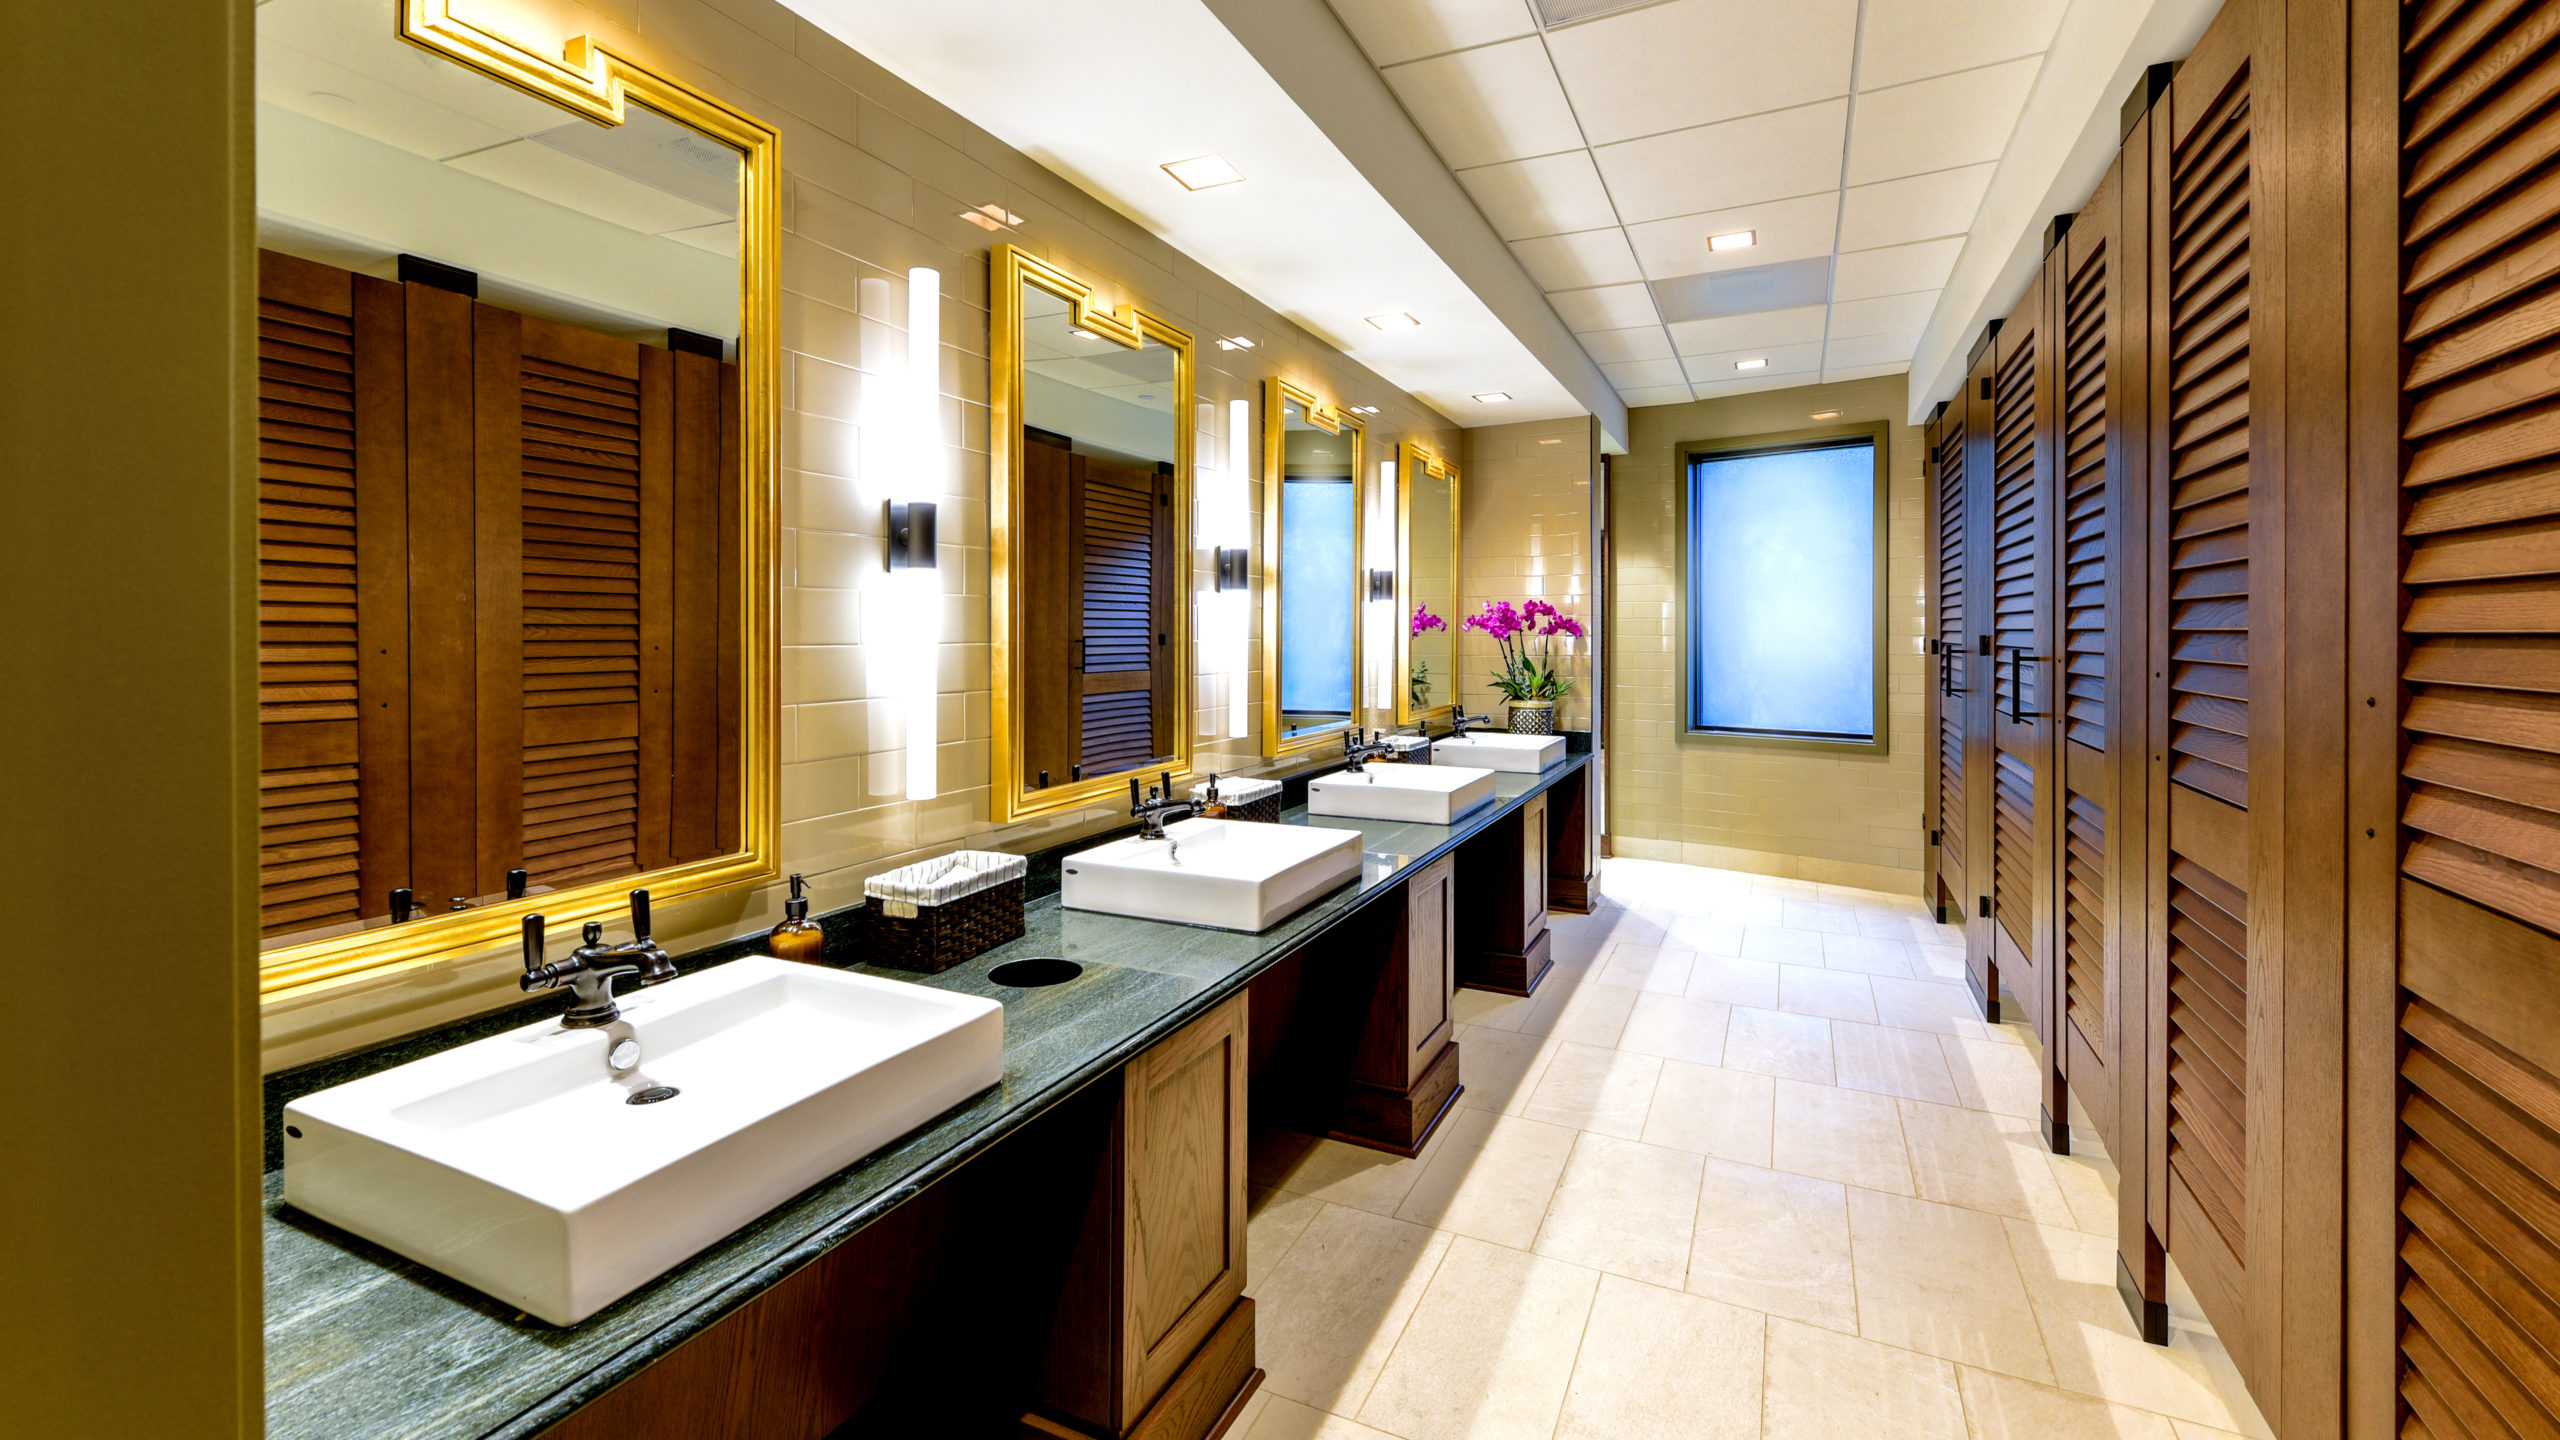 Upscale bathroom showing five, high privacy wood grain laminate partitions with louver doors opposite green marble vanity with white raised sinks.